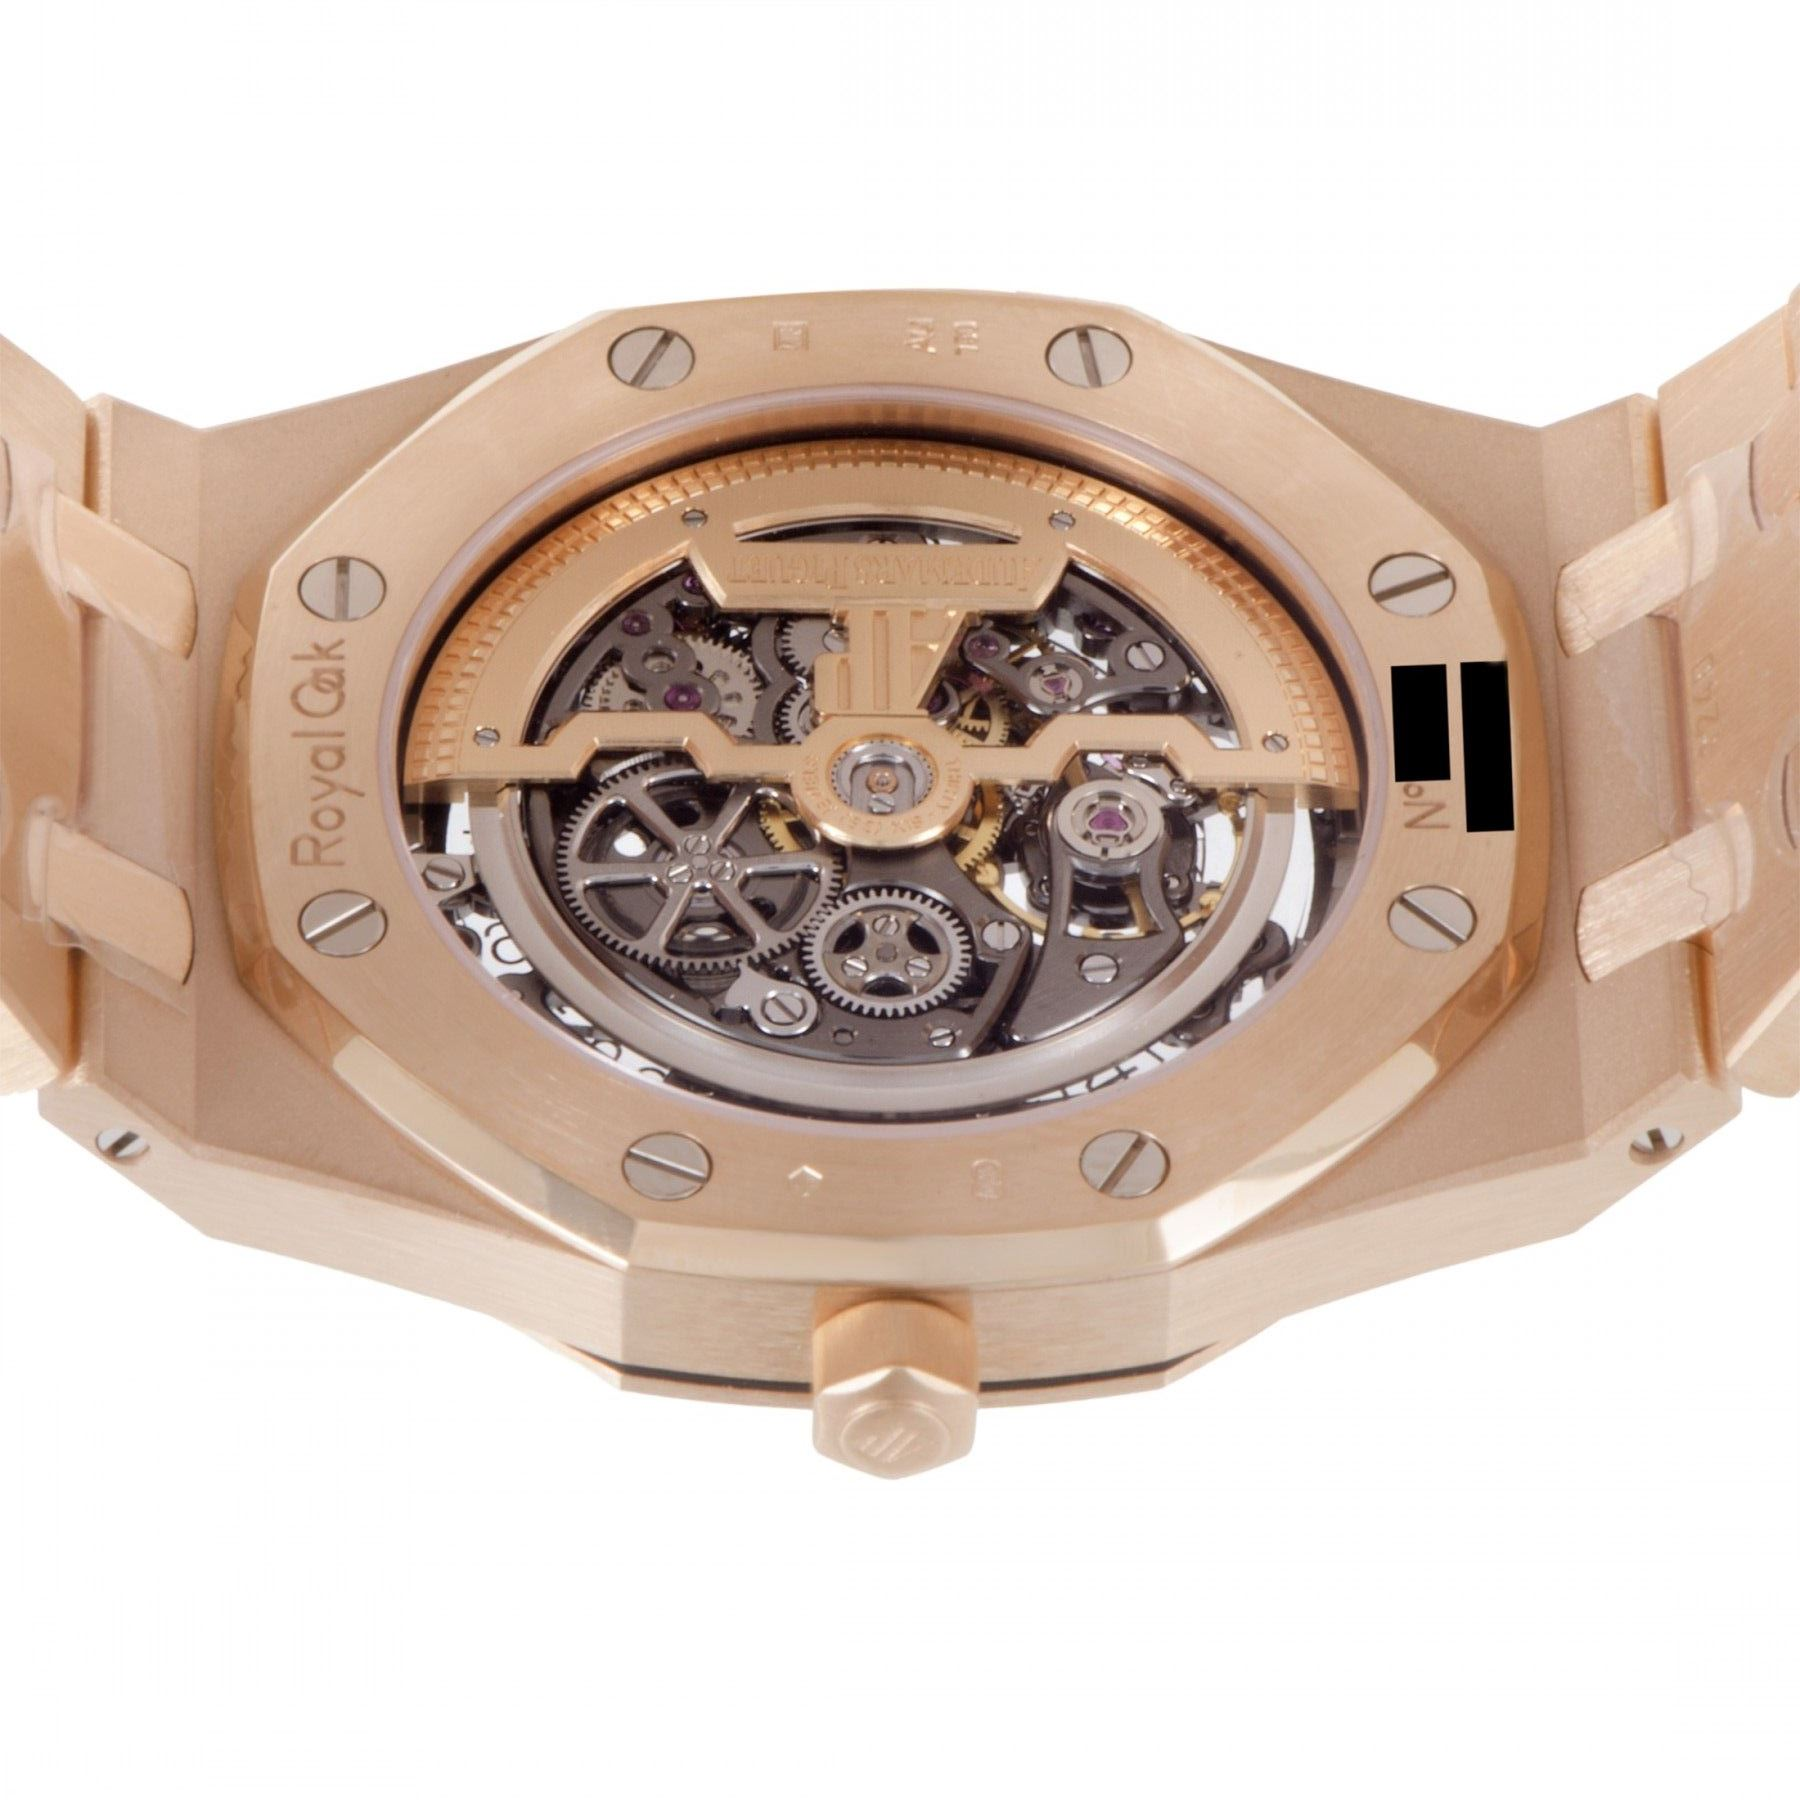 Đồng hồ Audemars Piguet Royal Oak Openworked Extra-thin 15204OR.OO.1240OR.01